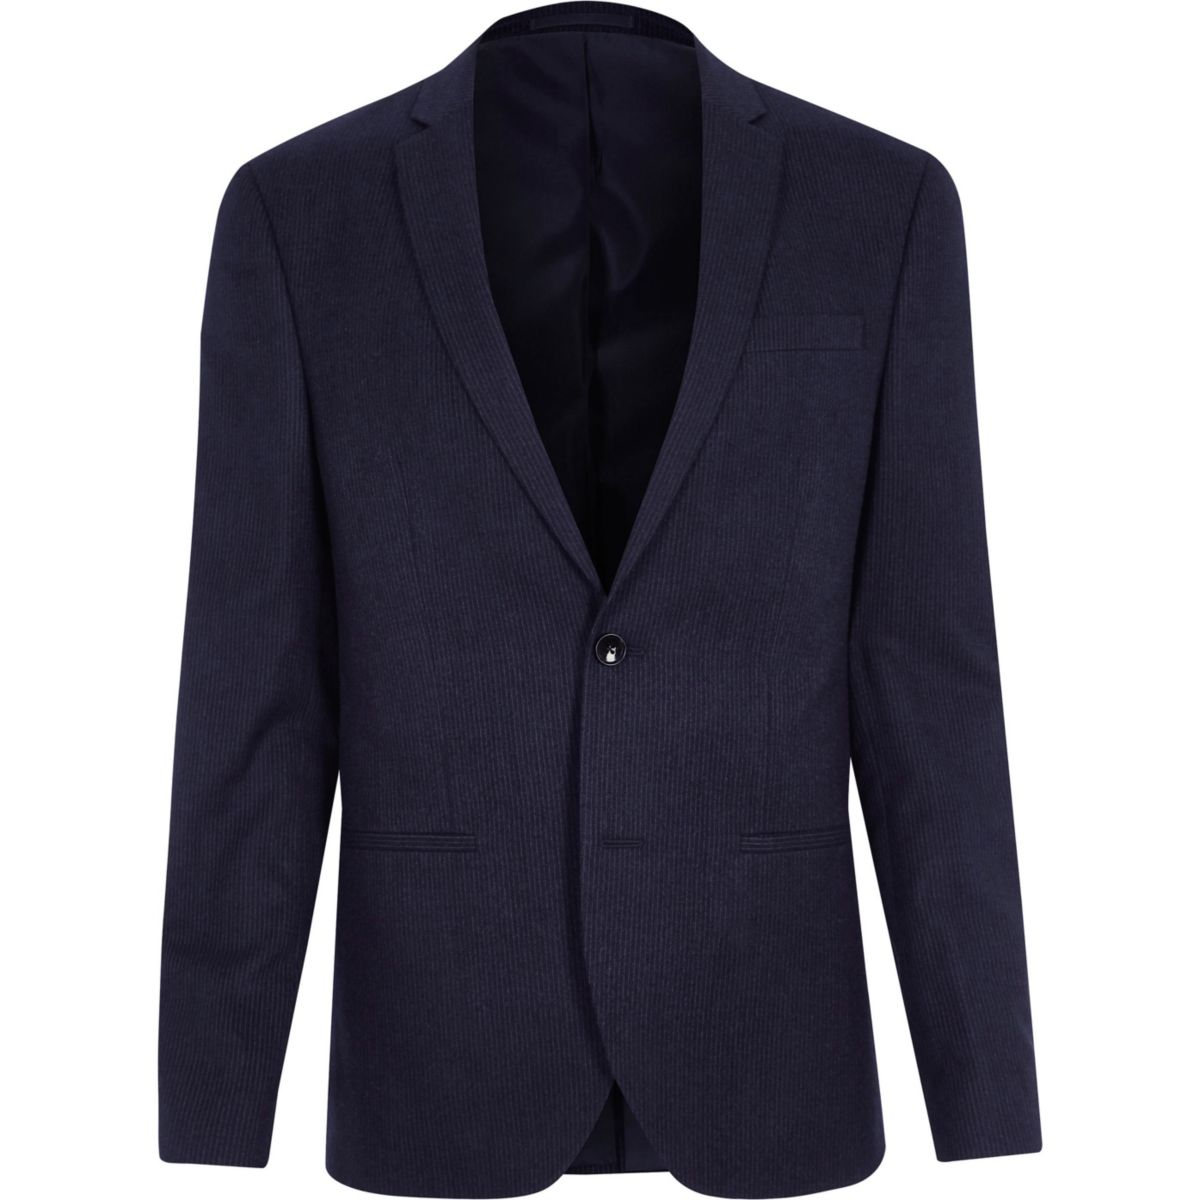 Navy stripe skinny suit jacket